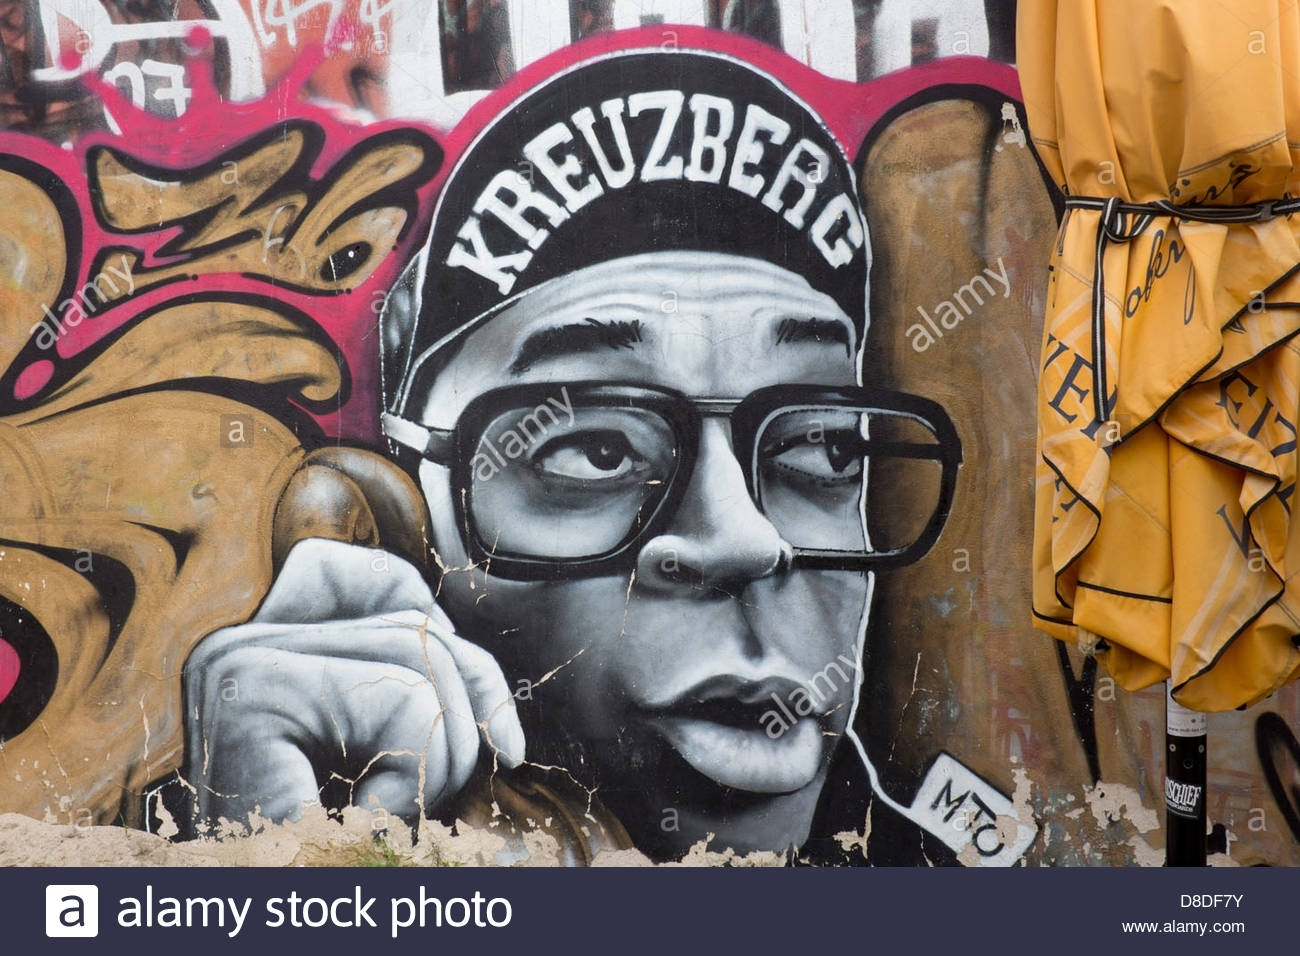 Street Art Graffiti On Wall In Kreuzberg Hip Hop Style Male Within Current Hip Hop Wall Art (View 12 of 15)